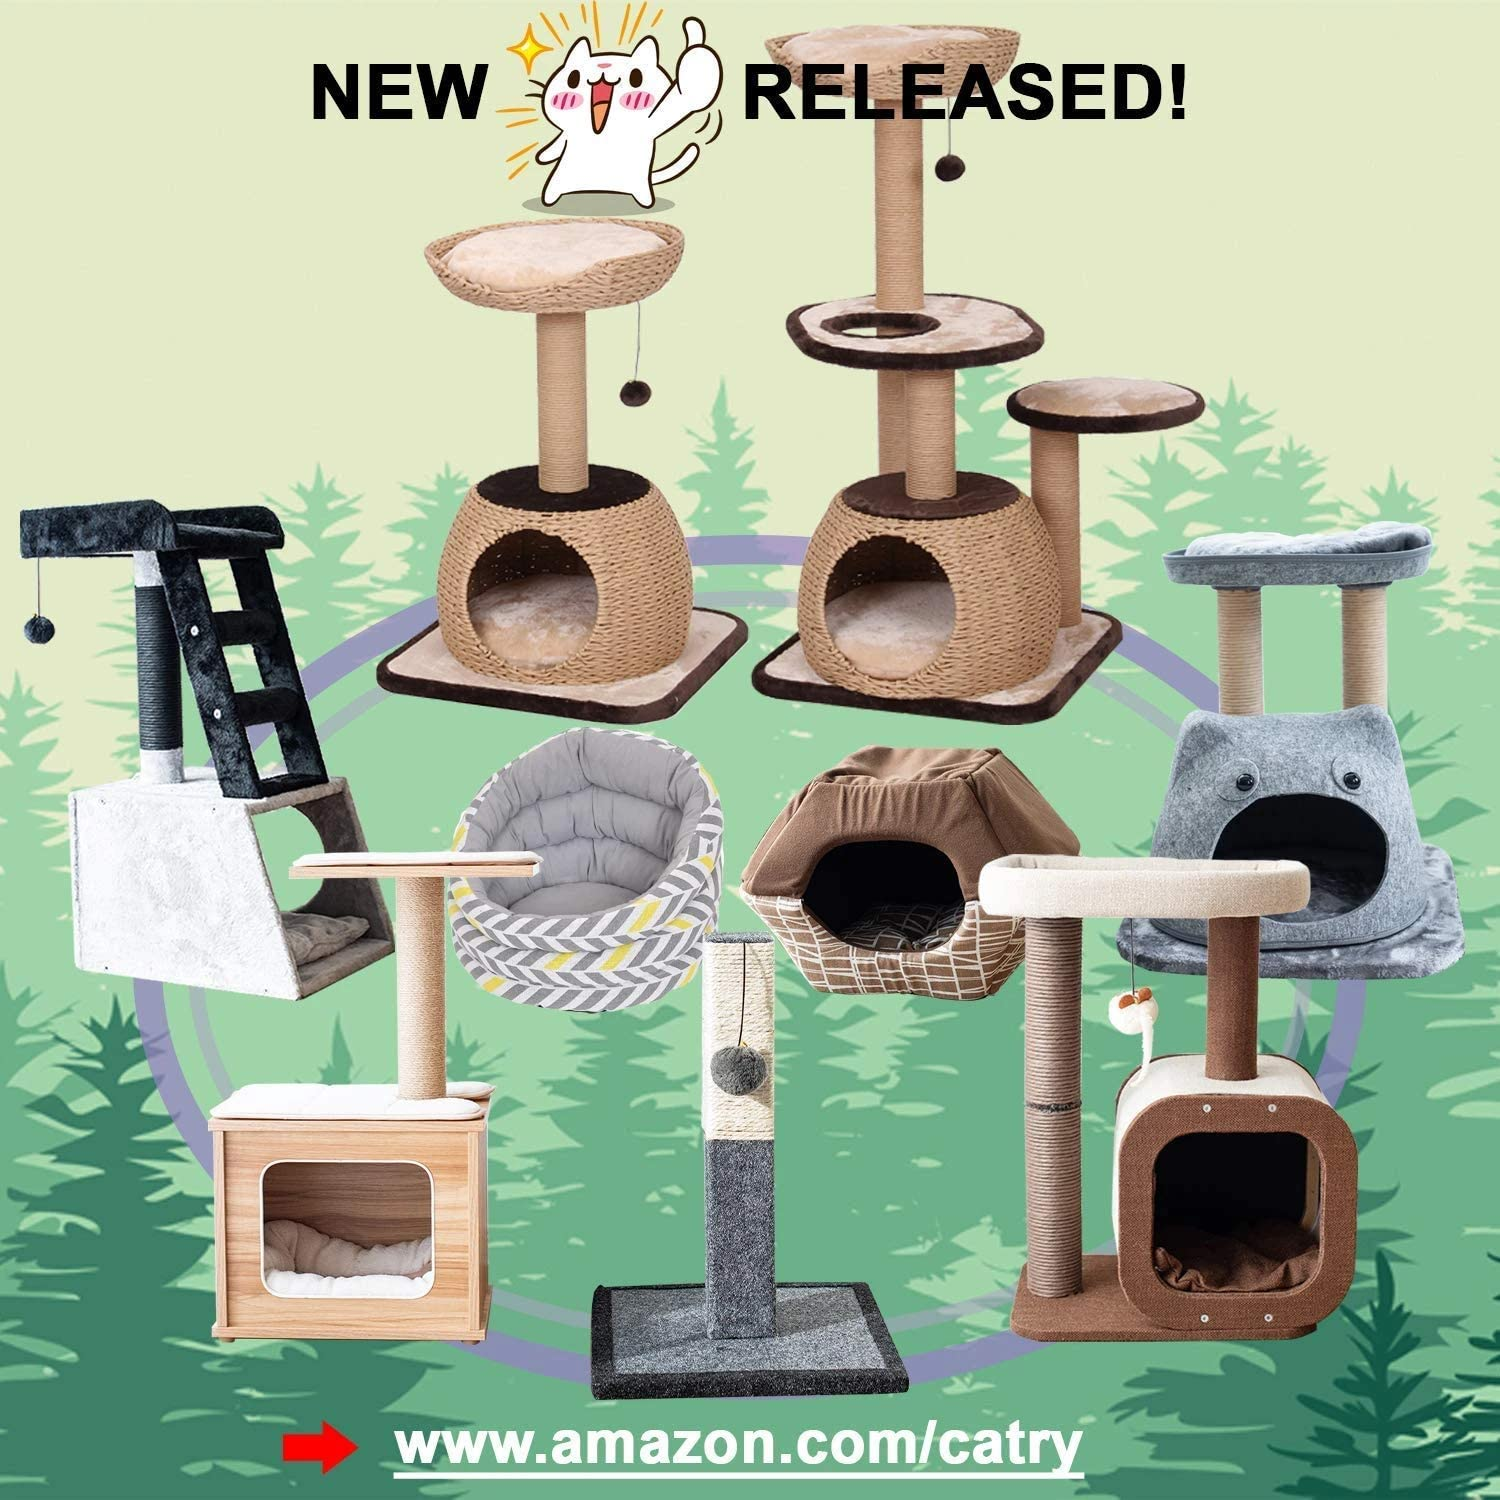 PetPals Cat Tree Cat Tower for Cat Activity with Scratching Postsand Toy Ball,Gray (Perch): Home & Kitchen